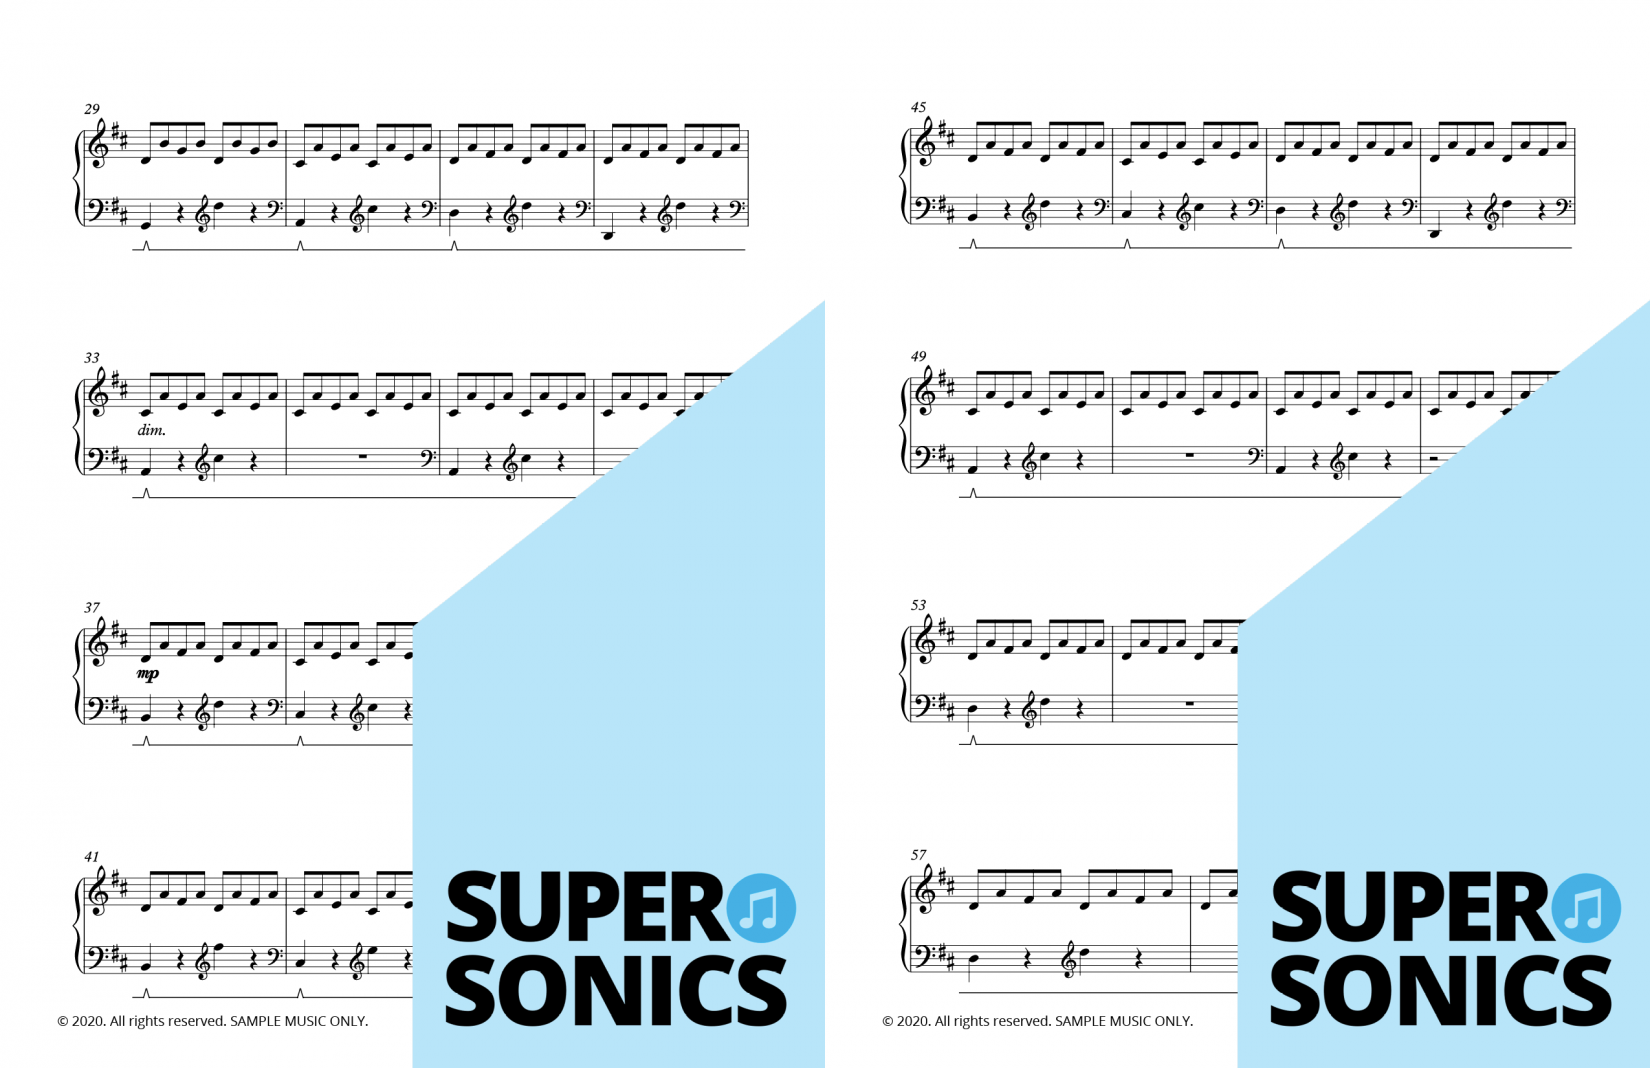 Supersonics Piano Method Module 29 sample